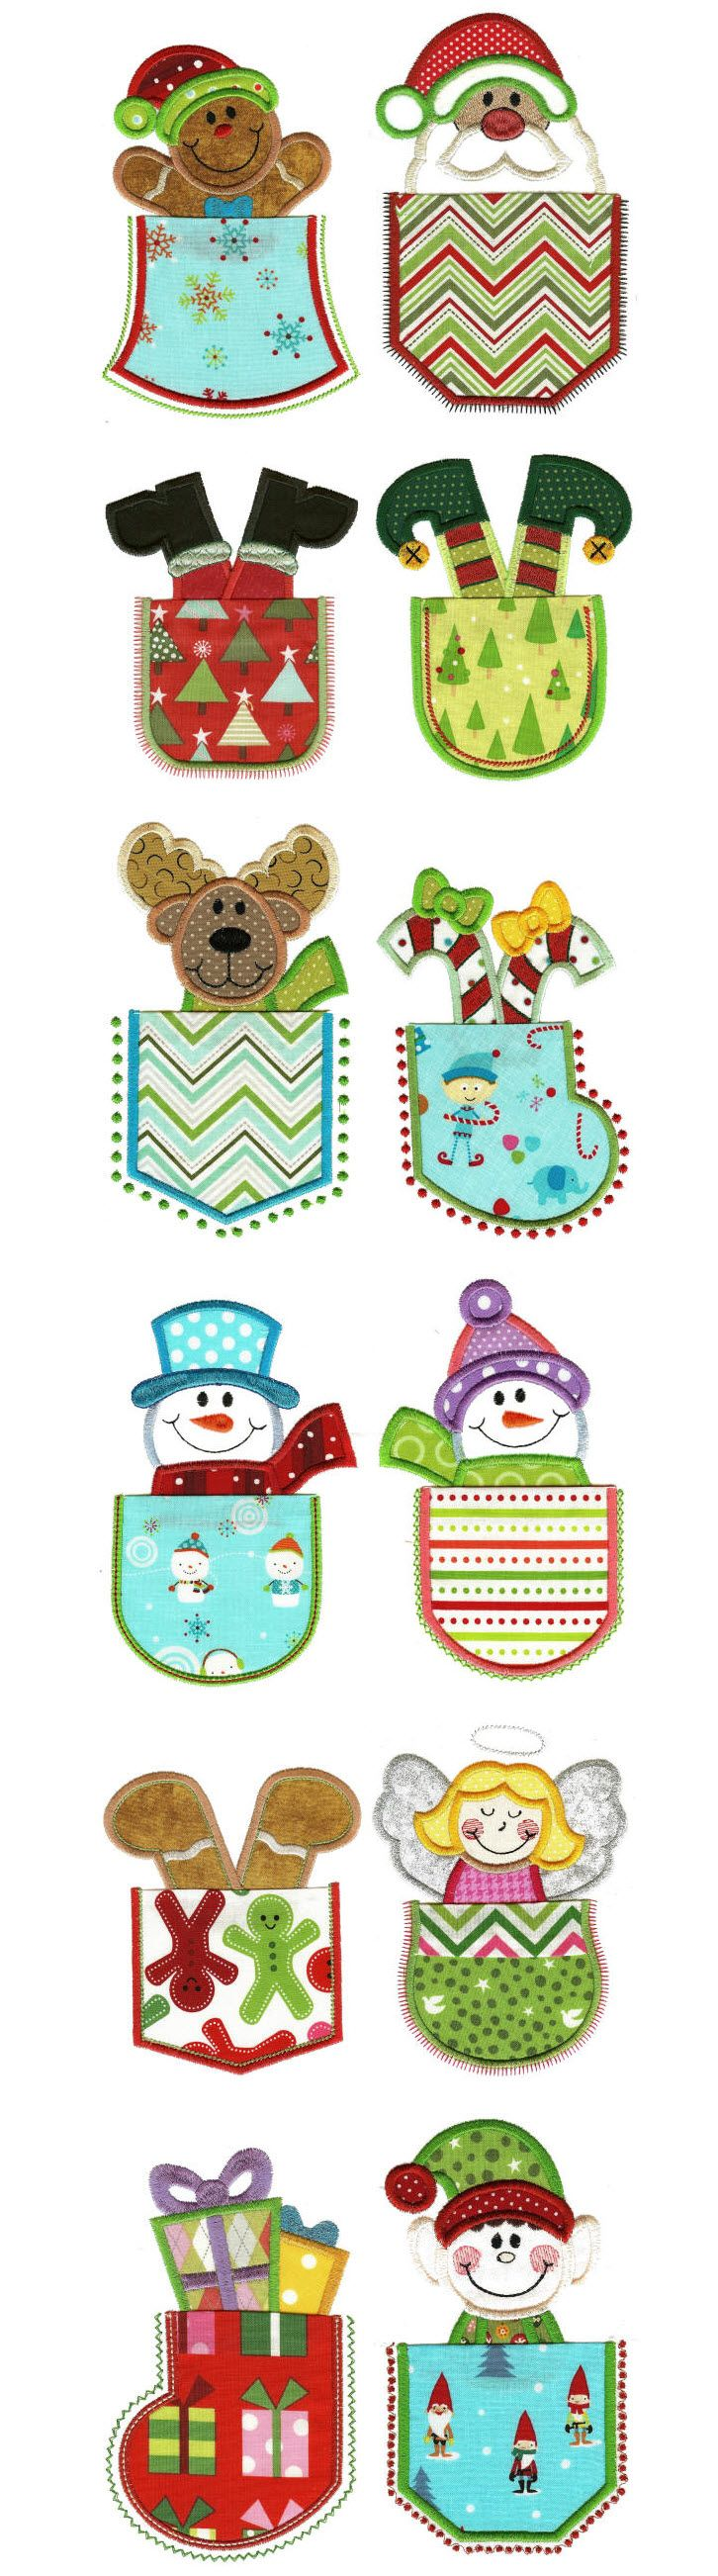 Christmas pockets applique machine embroidery designs by